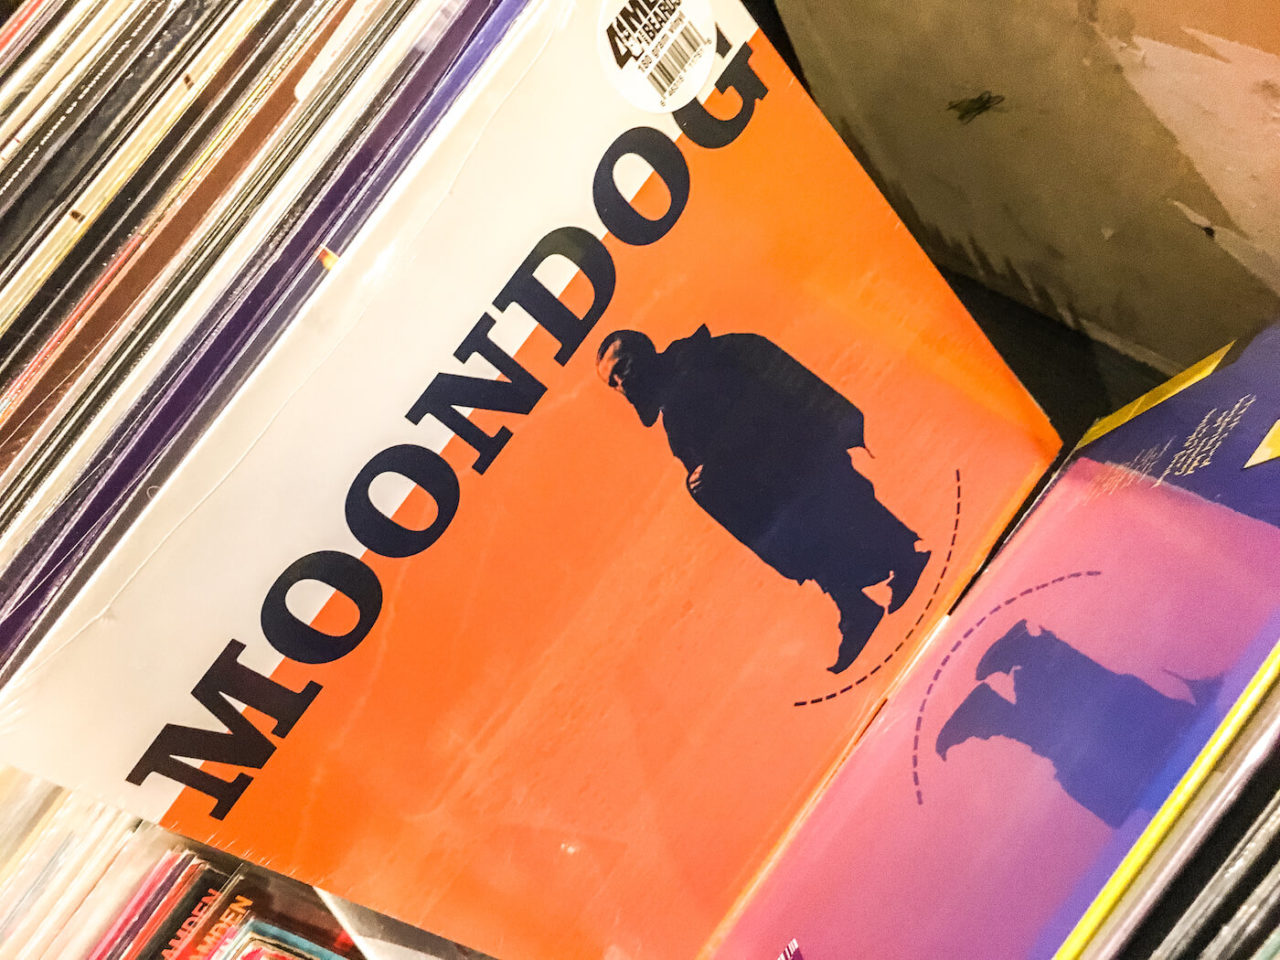 A definitive guide to Naples' best record shops